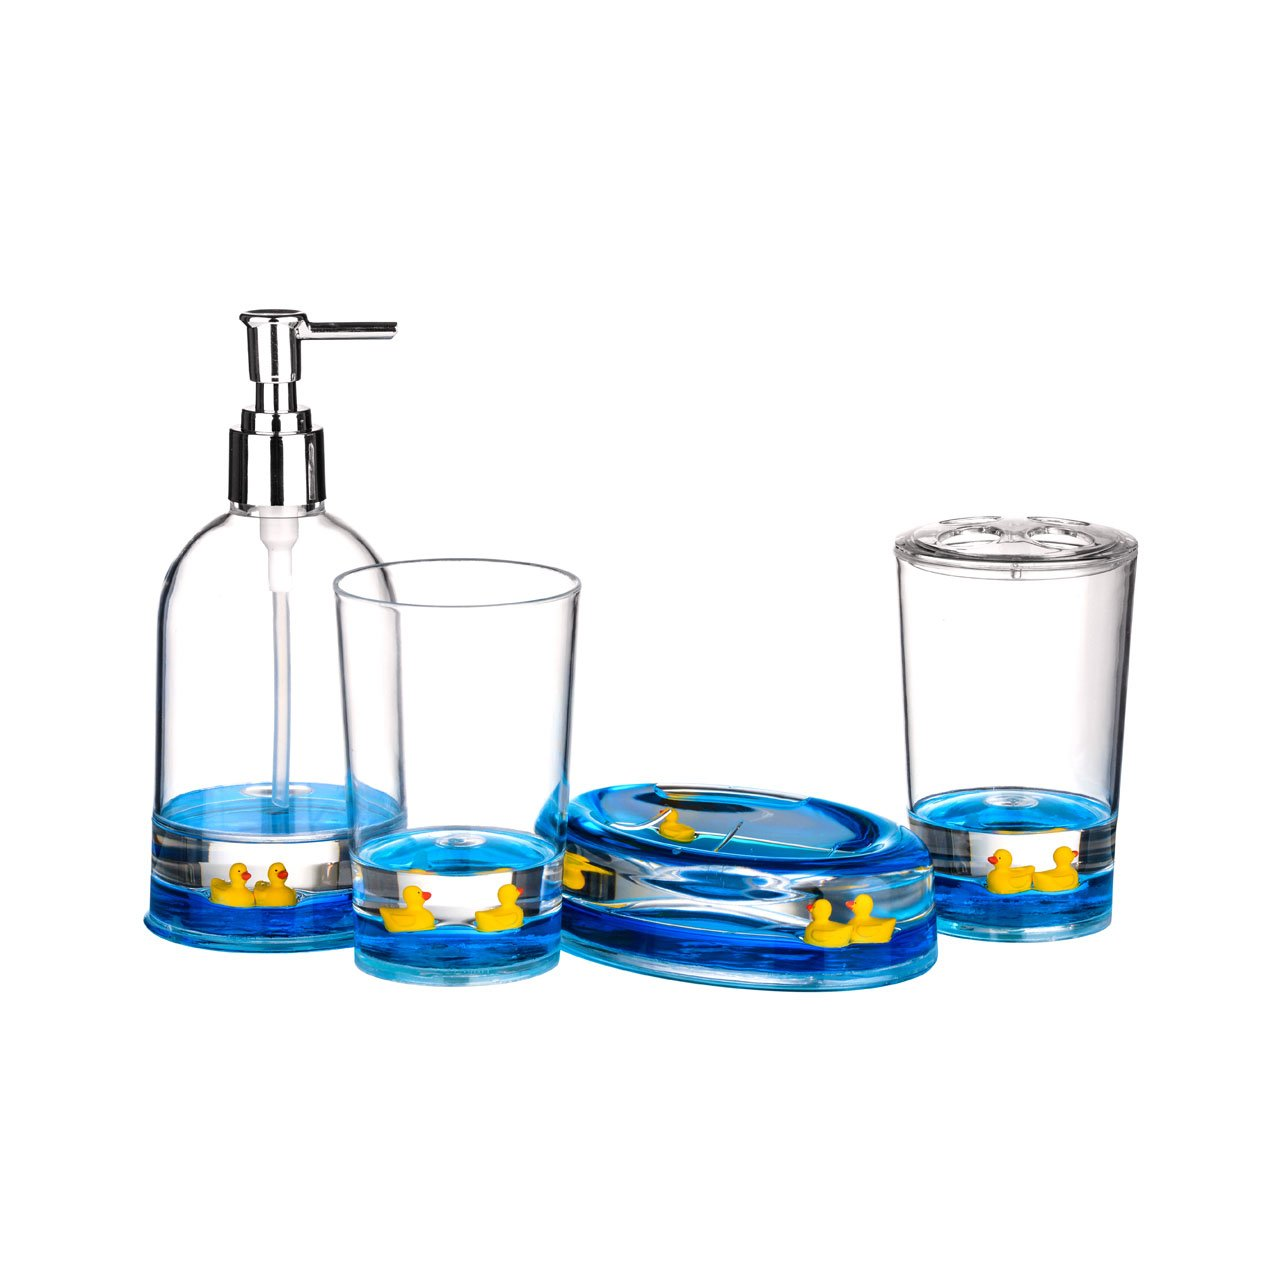 Marvelous Amazon.com: 4pc Bathroom Accessories Set Floating Ducks Design Acrylic  Finish By Premier: Paintings